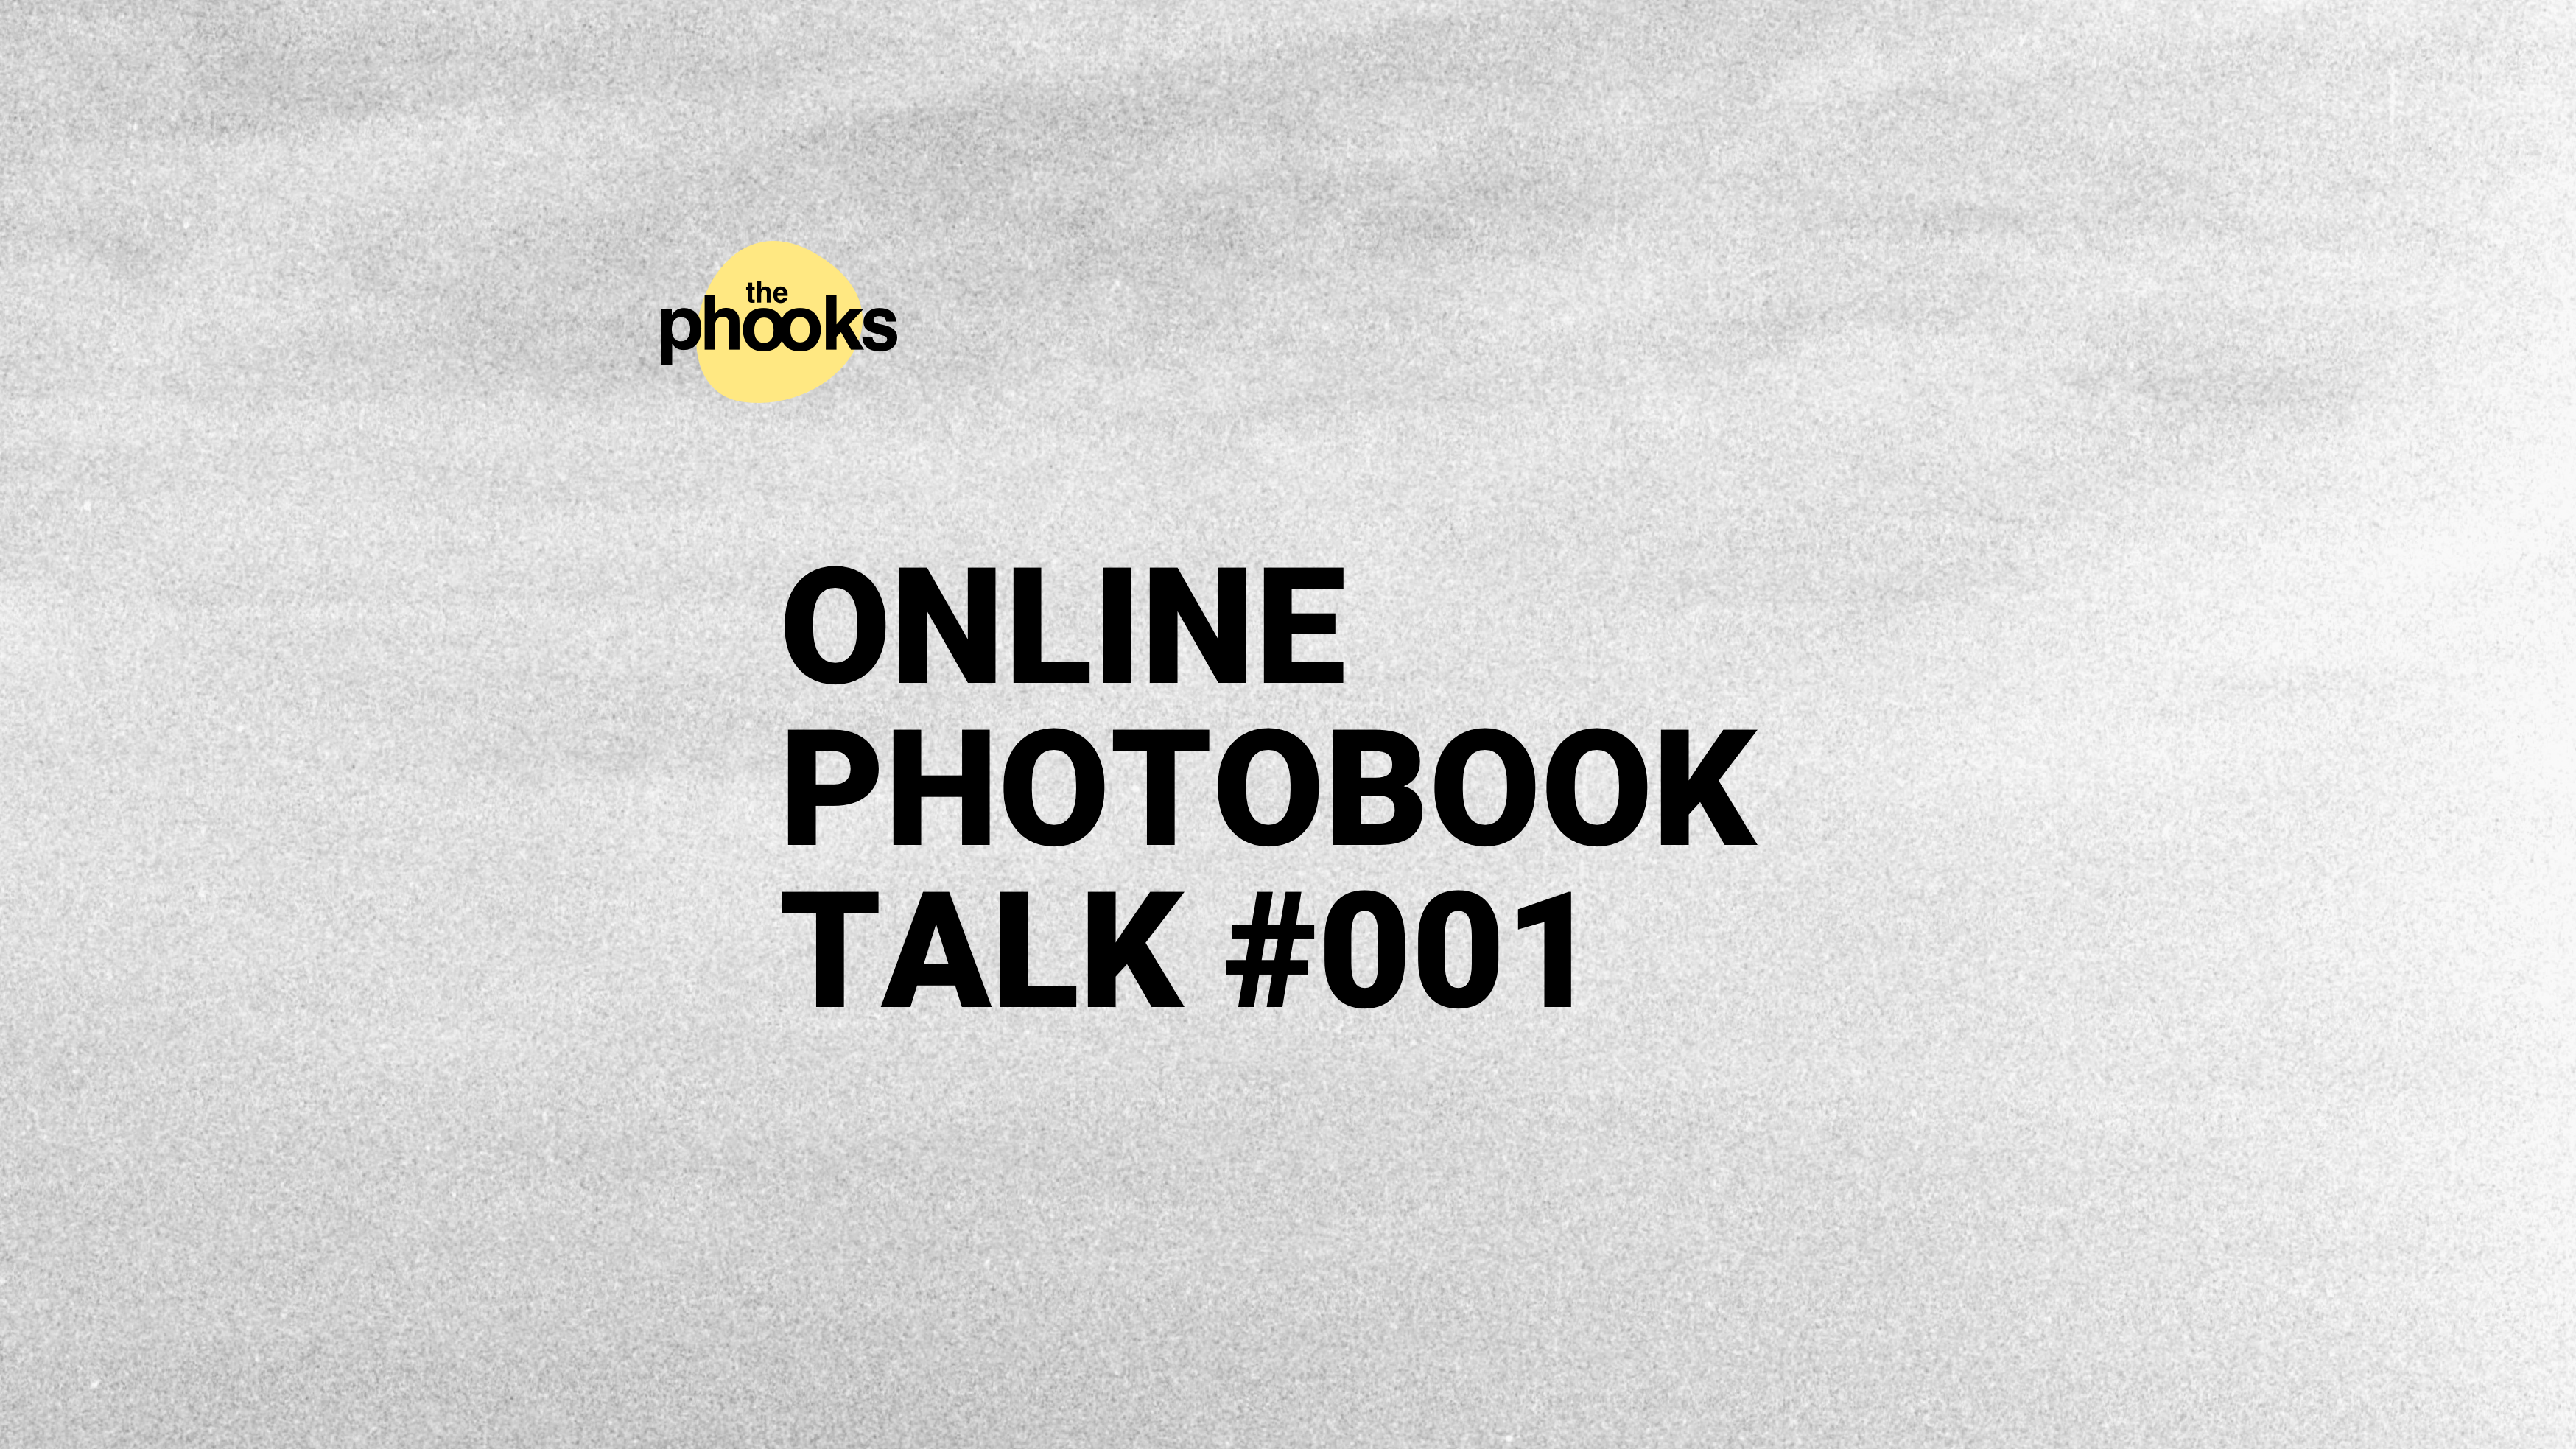 The Phooks Online Photo Book Talk #001